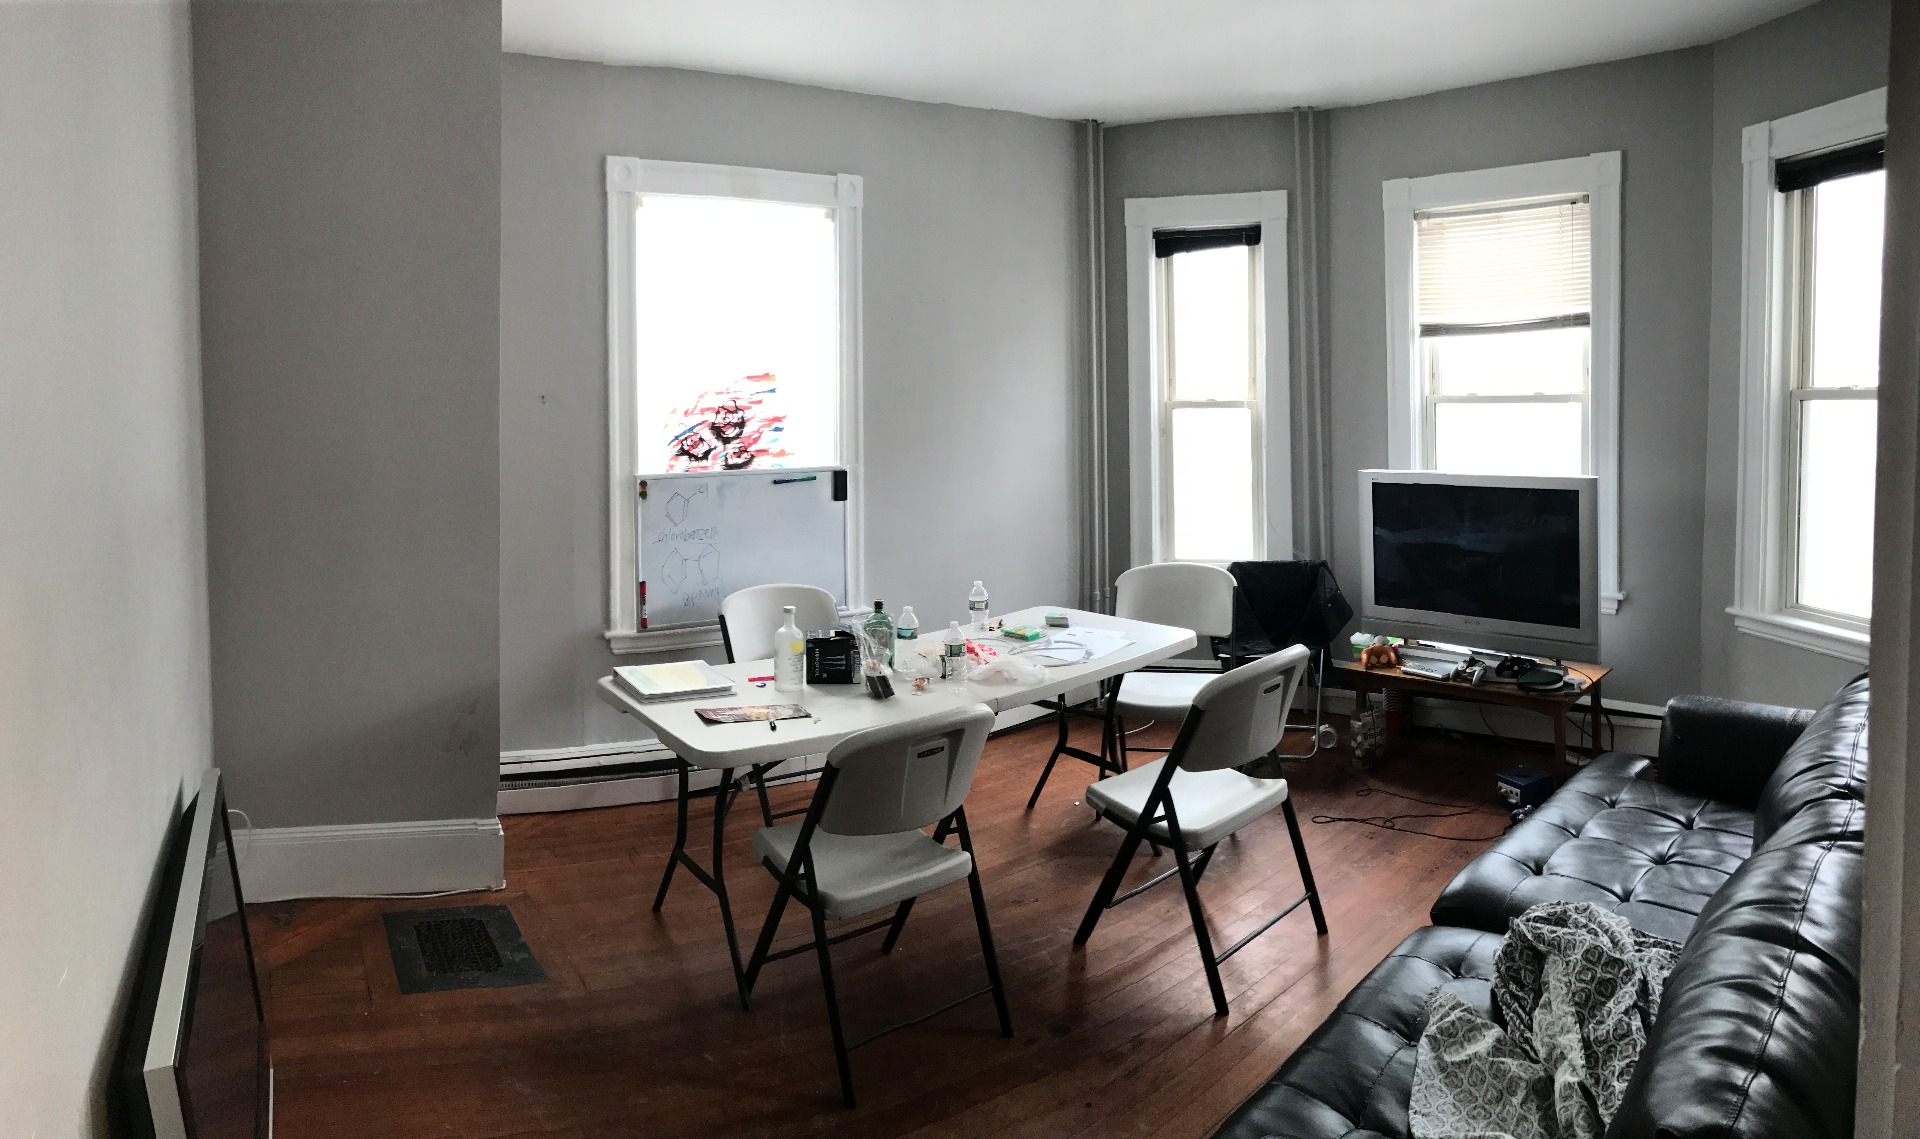 9/1 5BR/2BATH DUPLEX ON SUNSET W 2 PARKING INCLUDED!